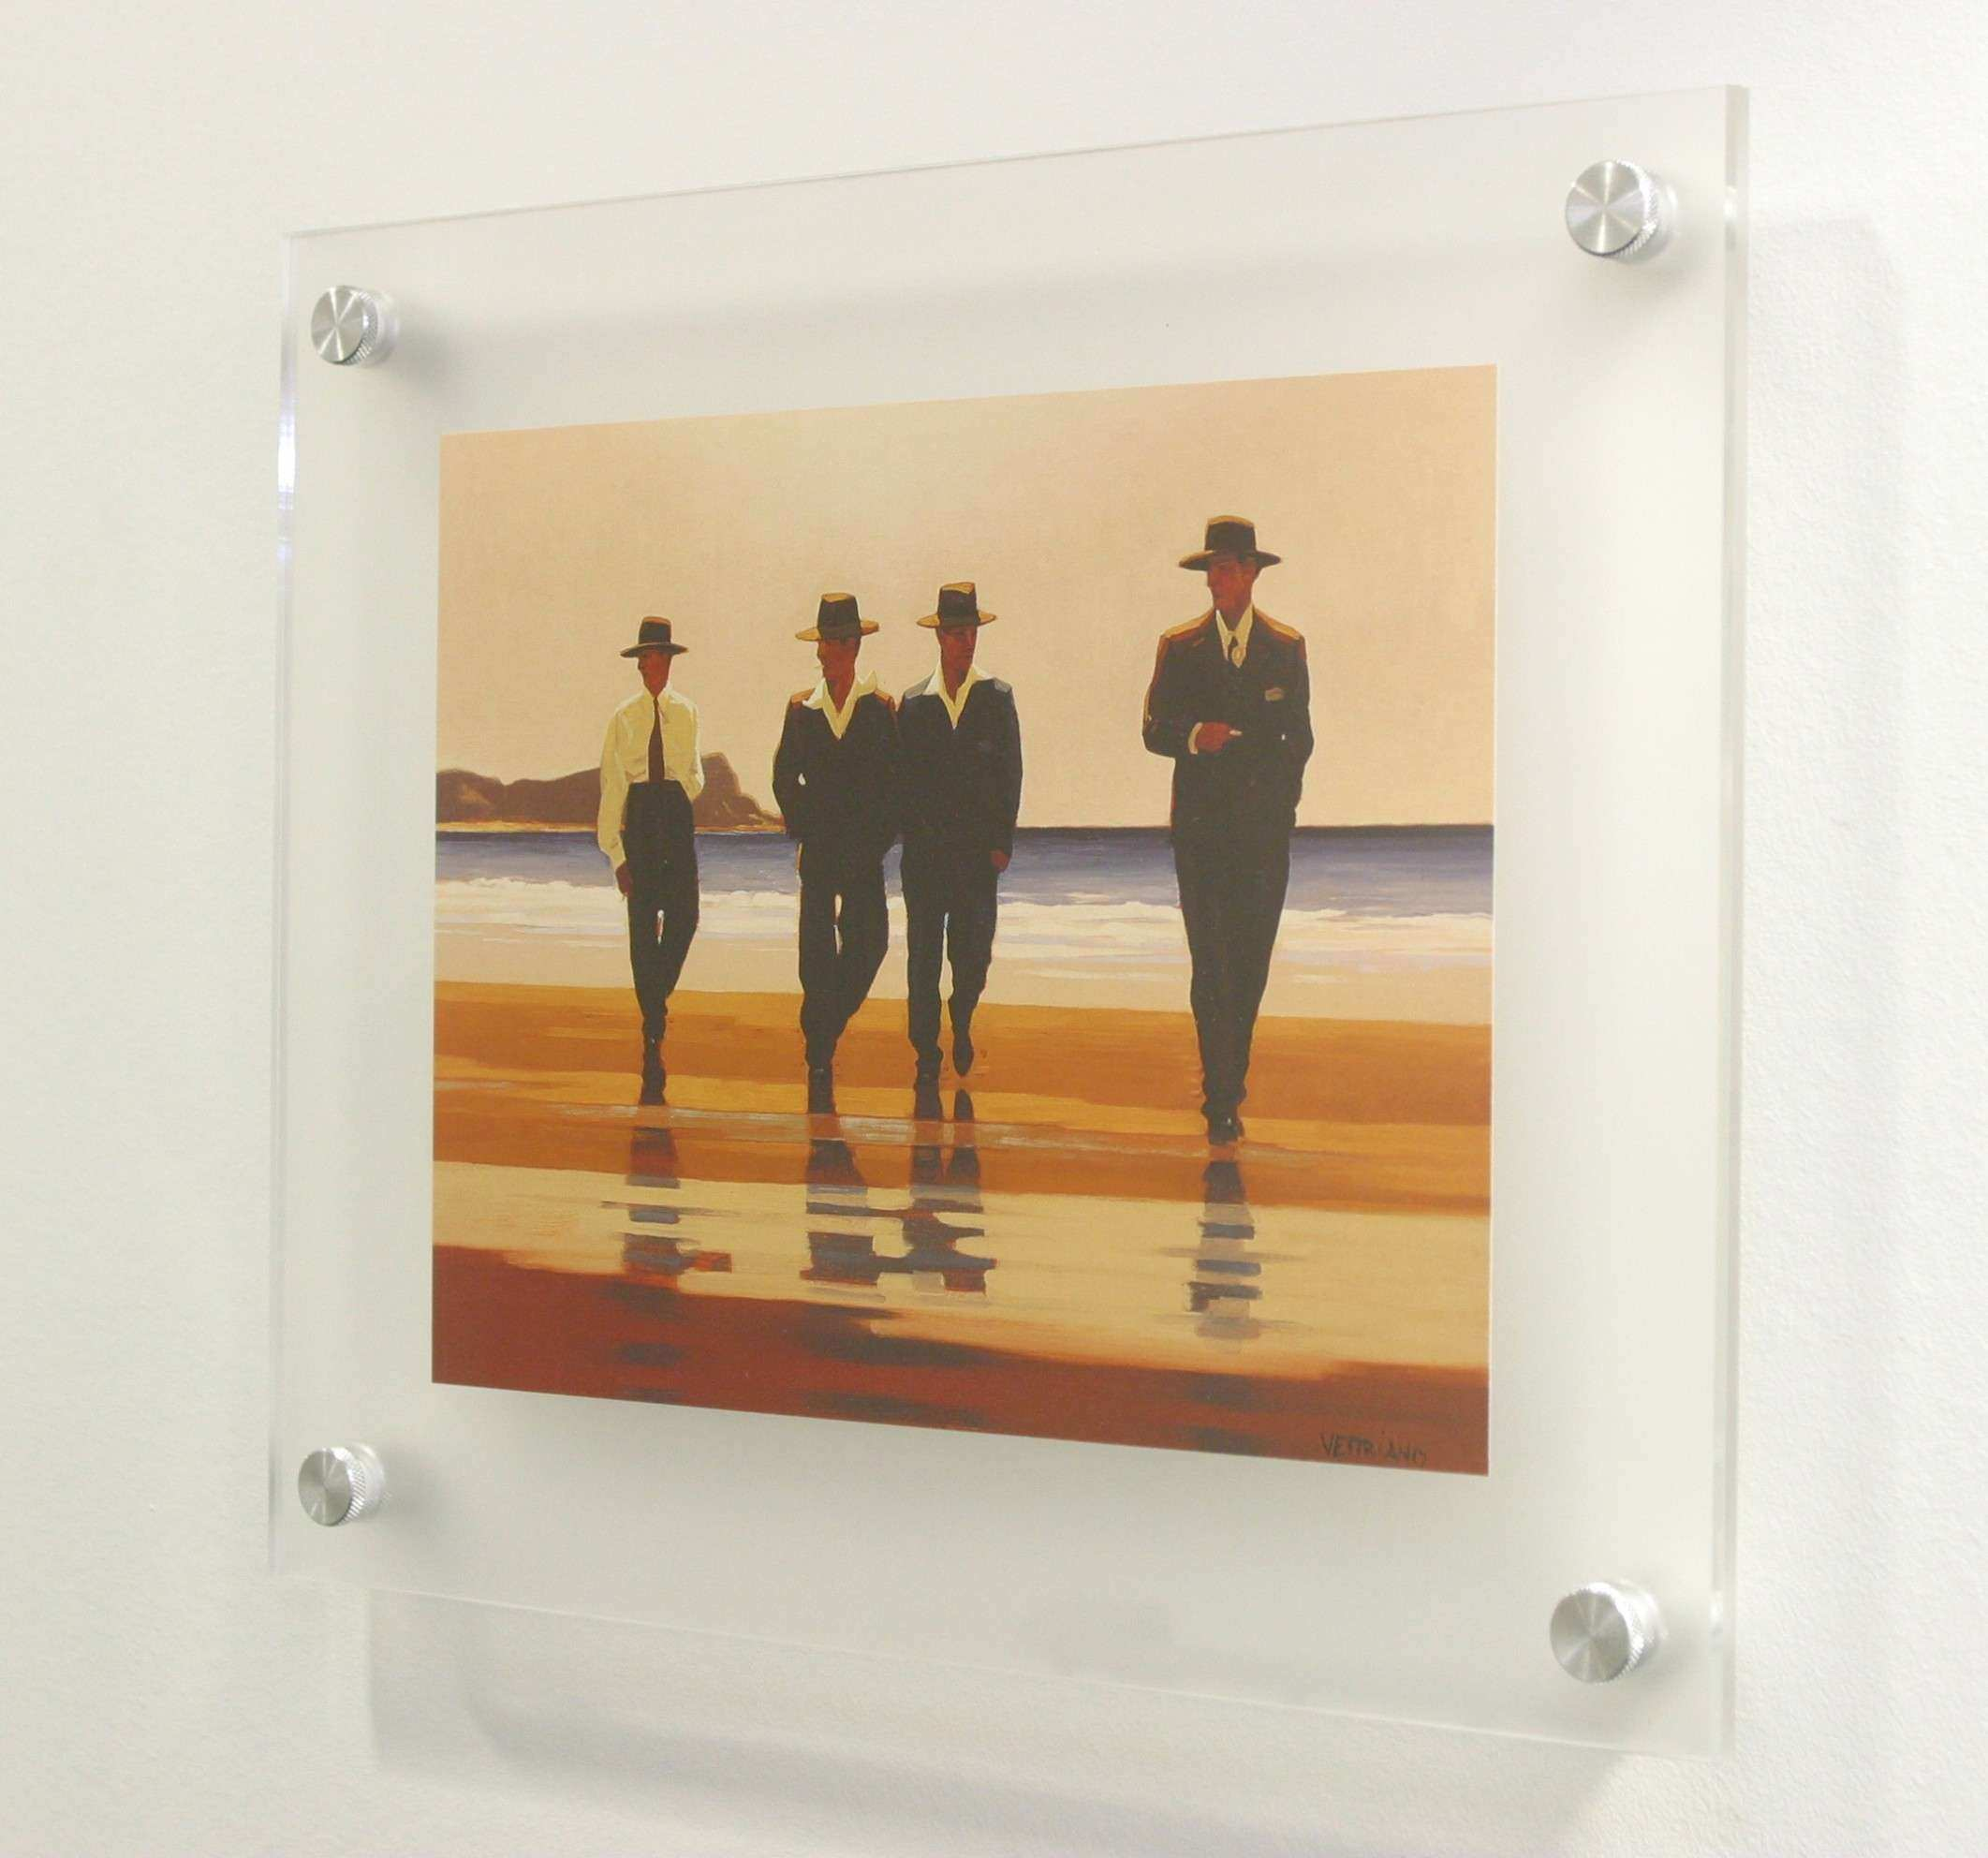 Wall mounted acrylic poster holder